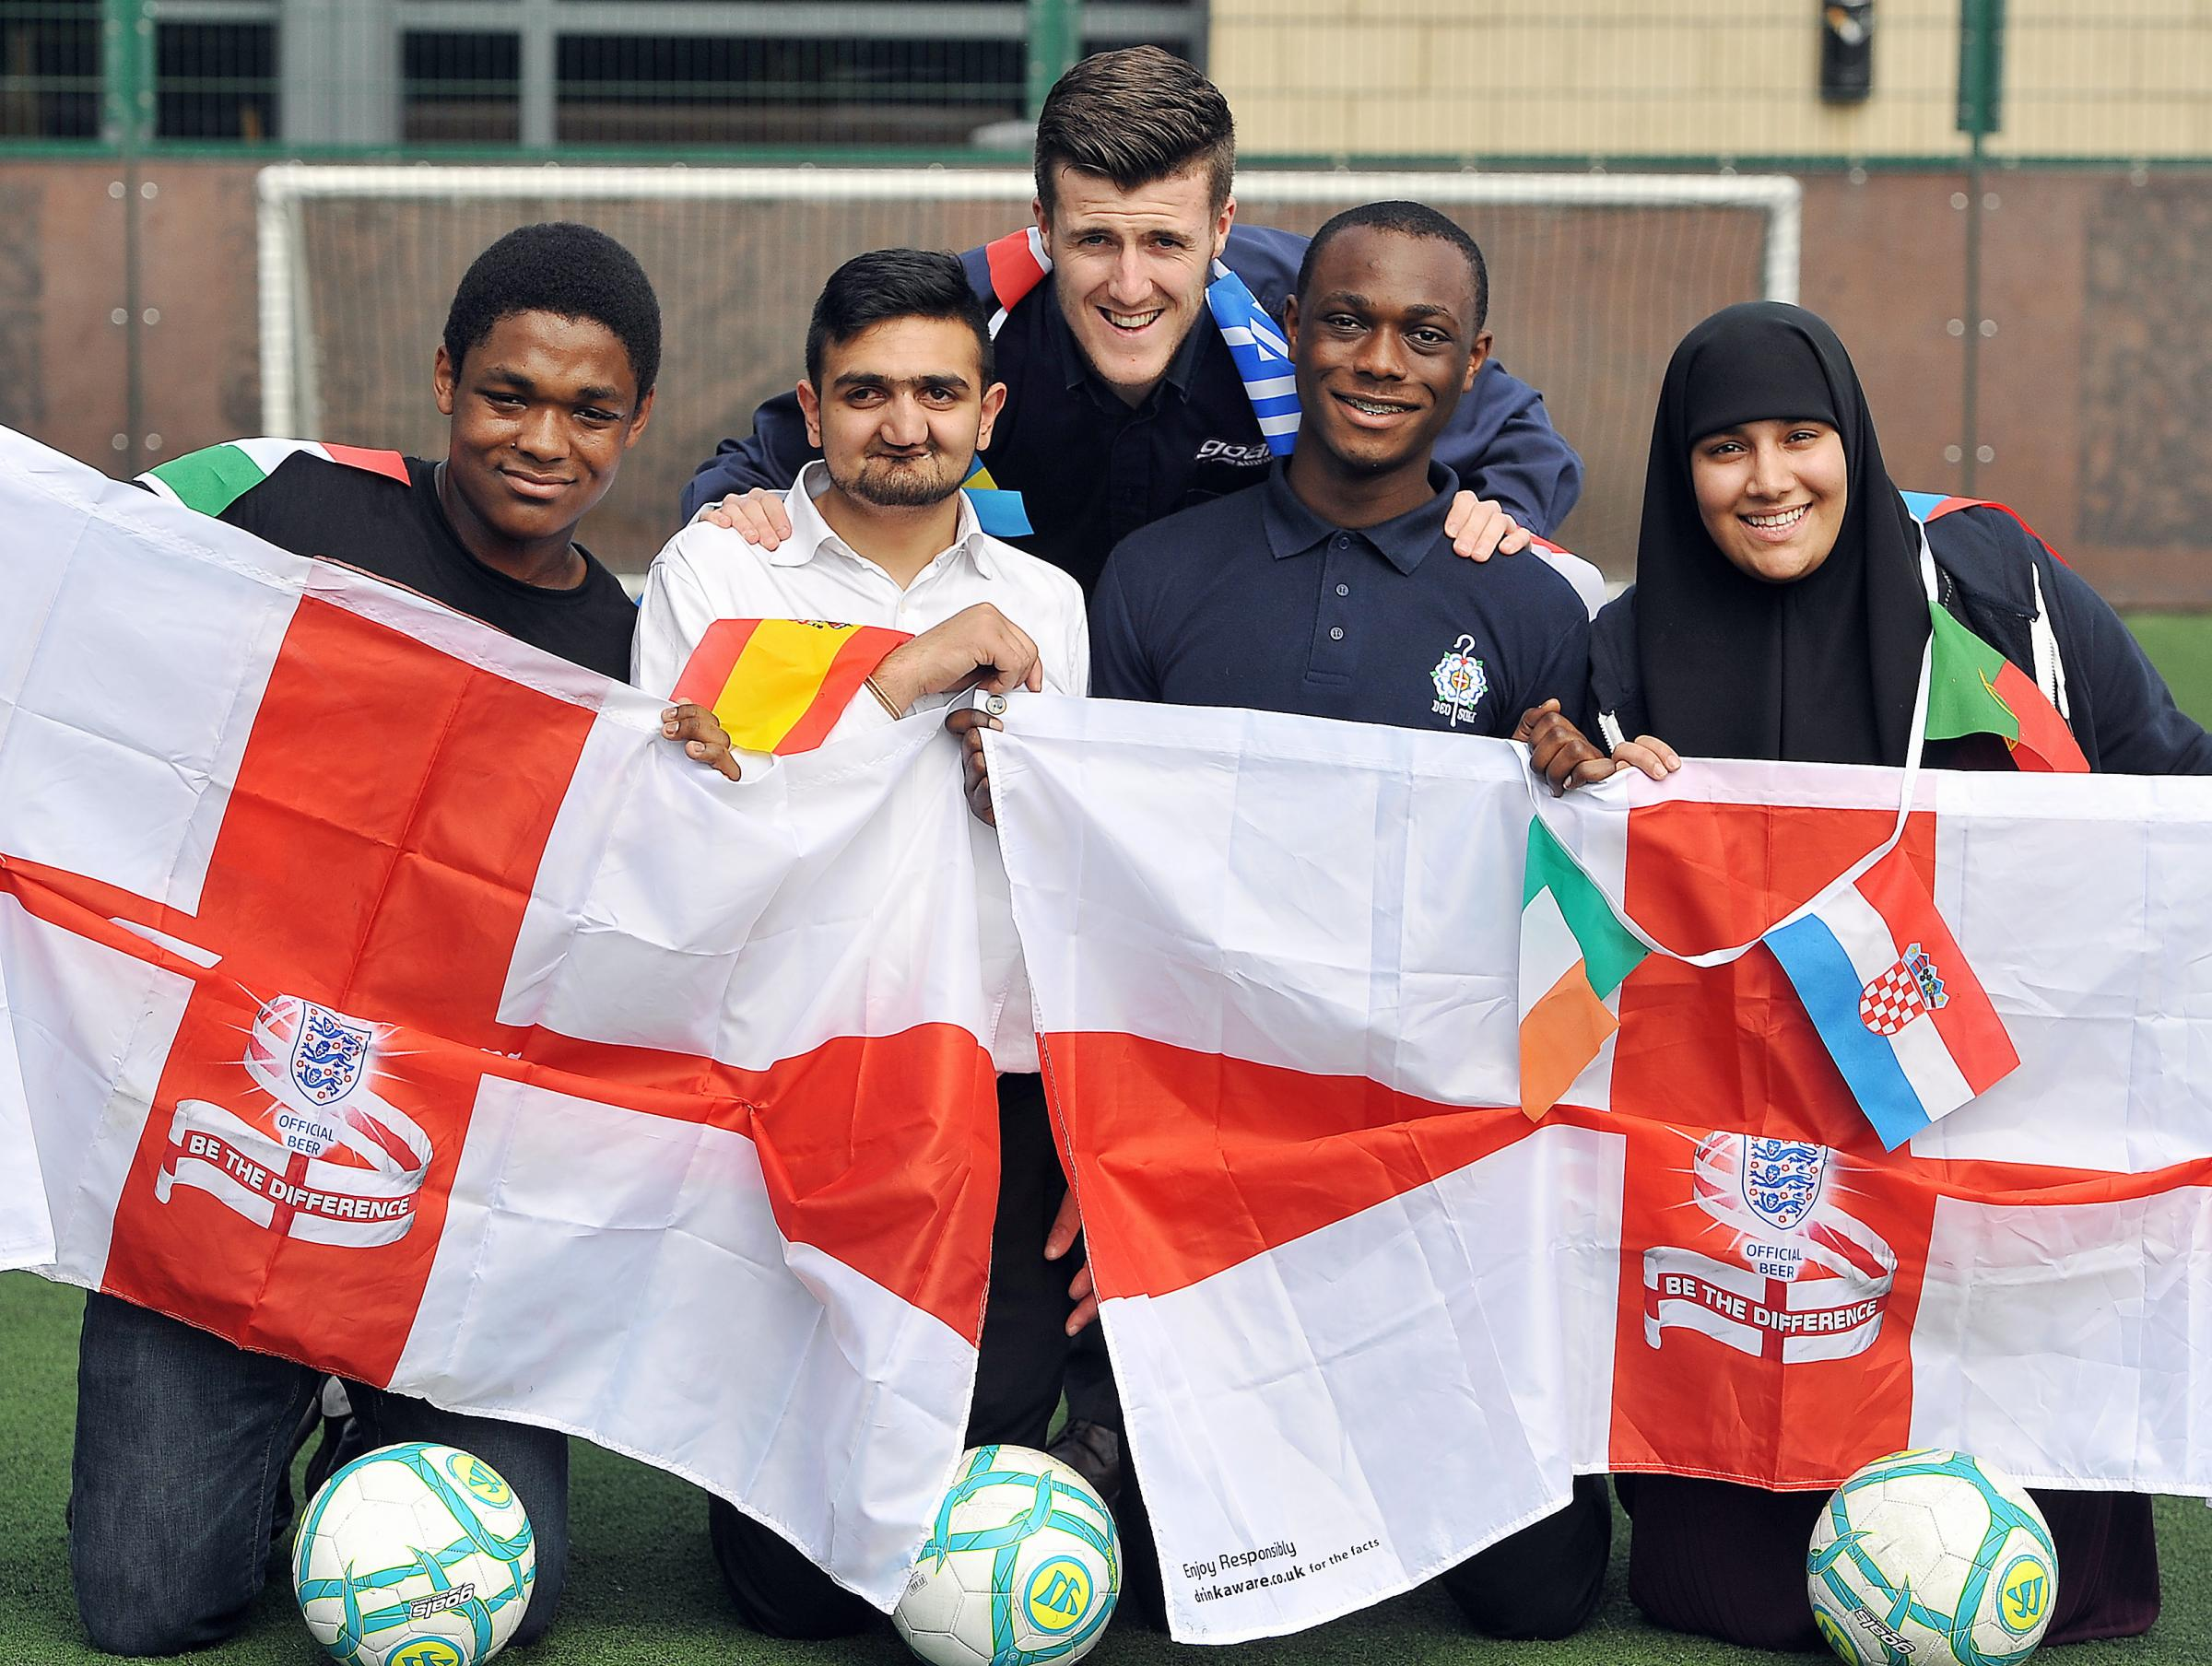 Marcus Strudwick, of Goals, with Jordan Hibbert, Eugene Amponsah, Rahib Shabir and Aisha Saddique